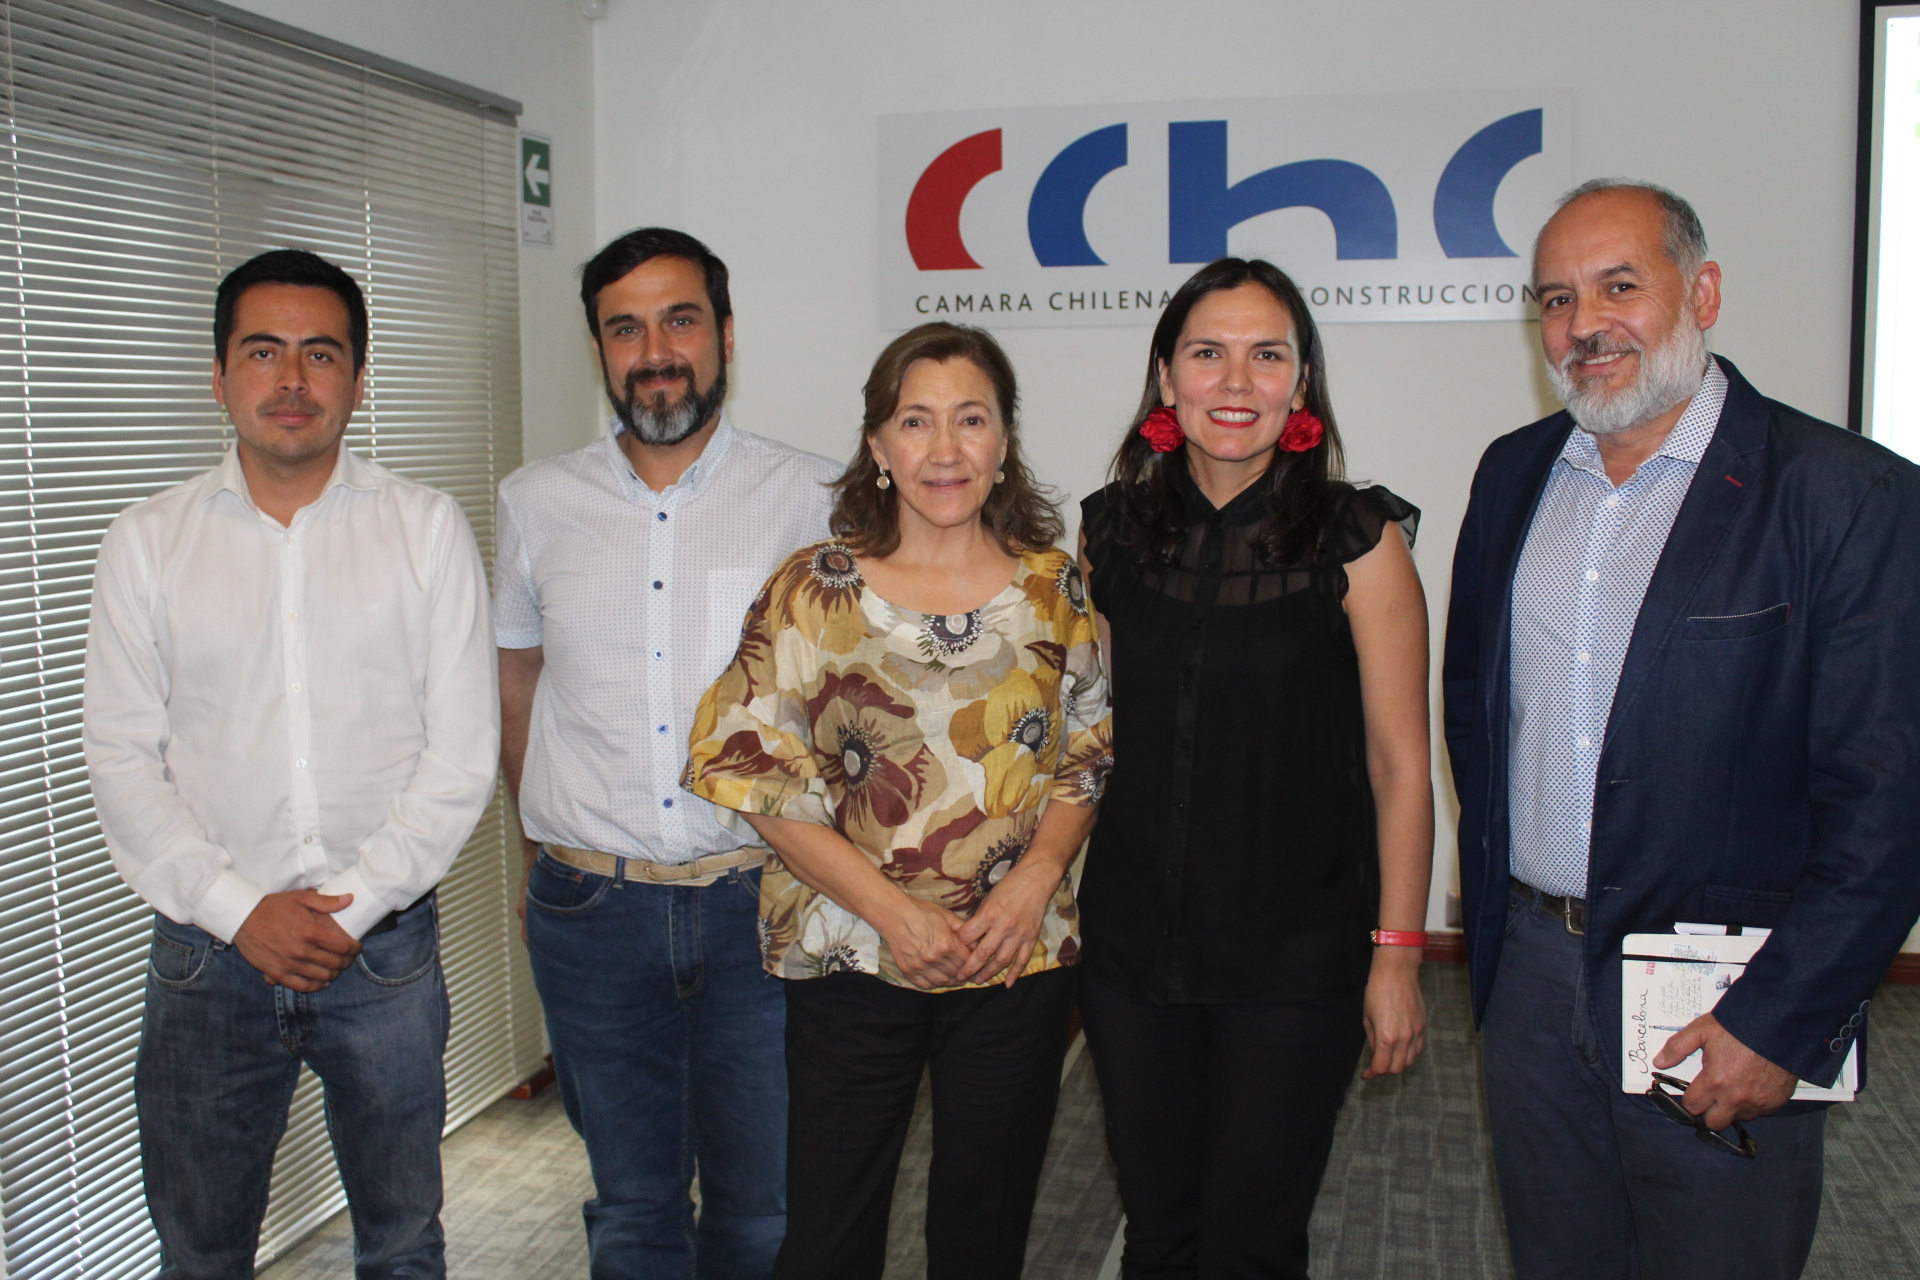 Socios de CChC Chillán analizaron Plan Regulador Intercomunal Chillán-Chillán Viejo. noticias